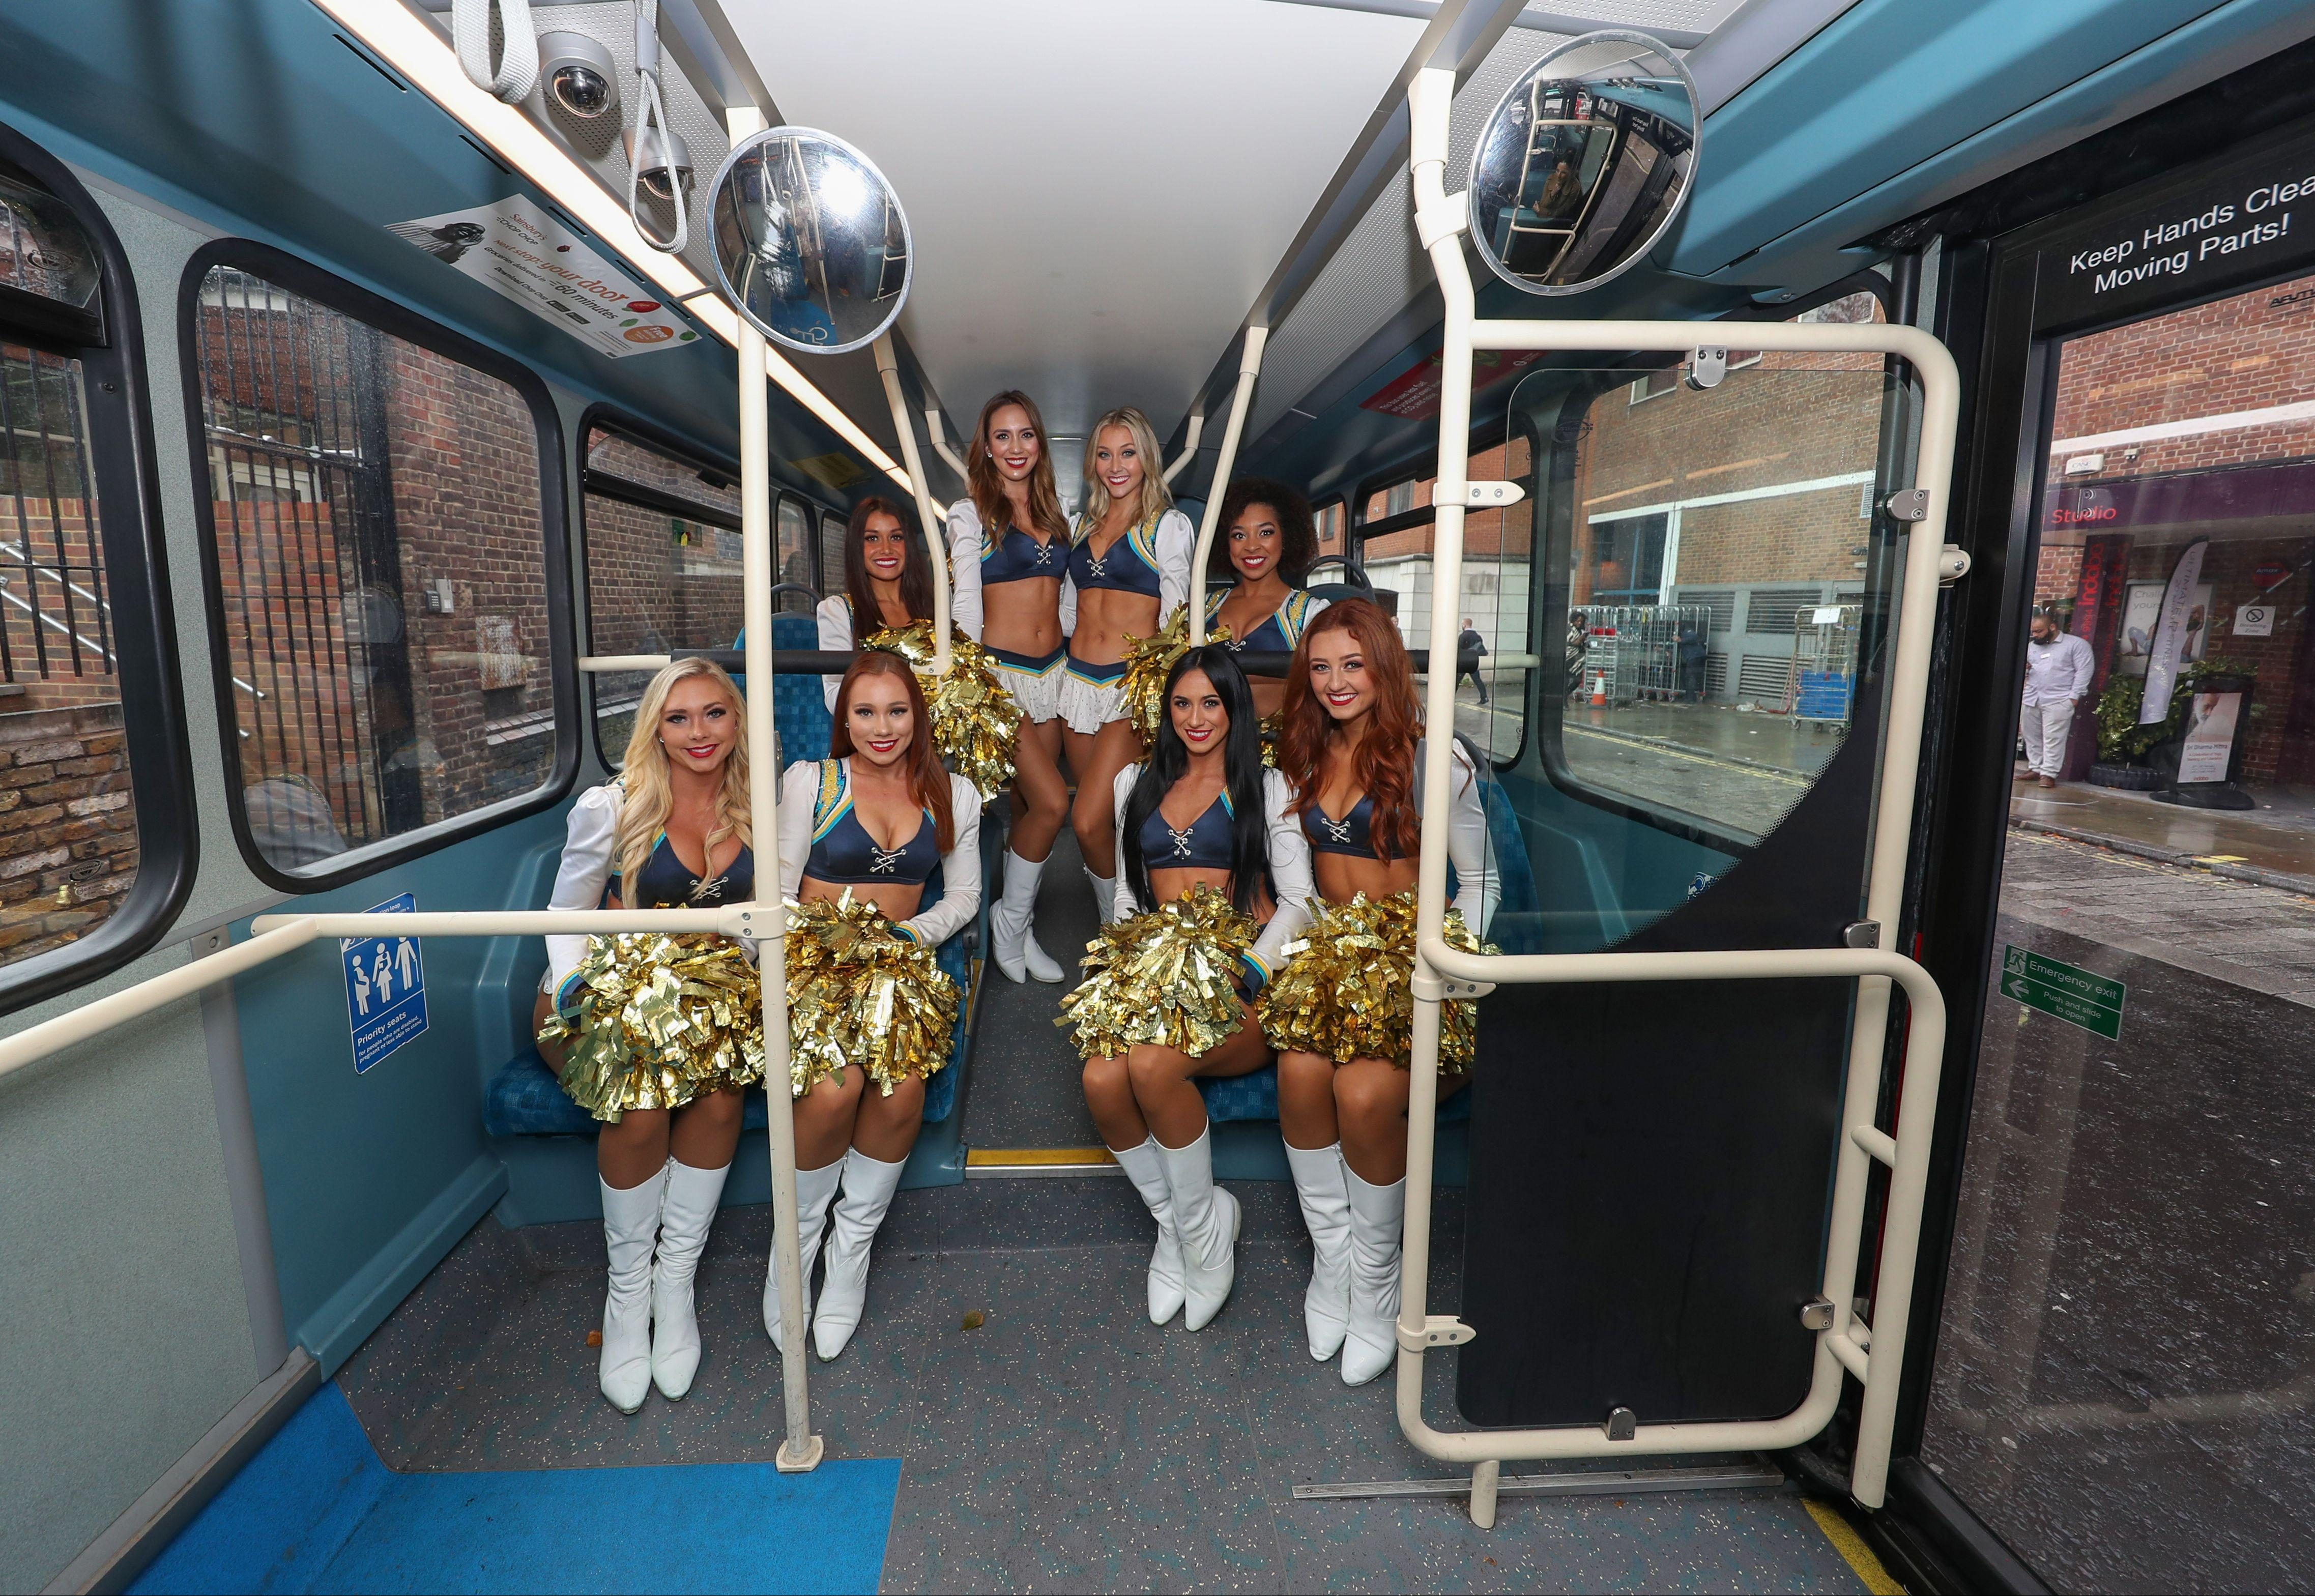 The Chargers cheerleaders took a trip on a big red bus during today's trip